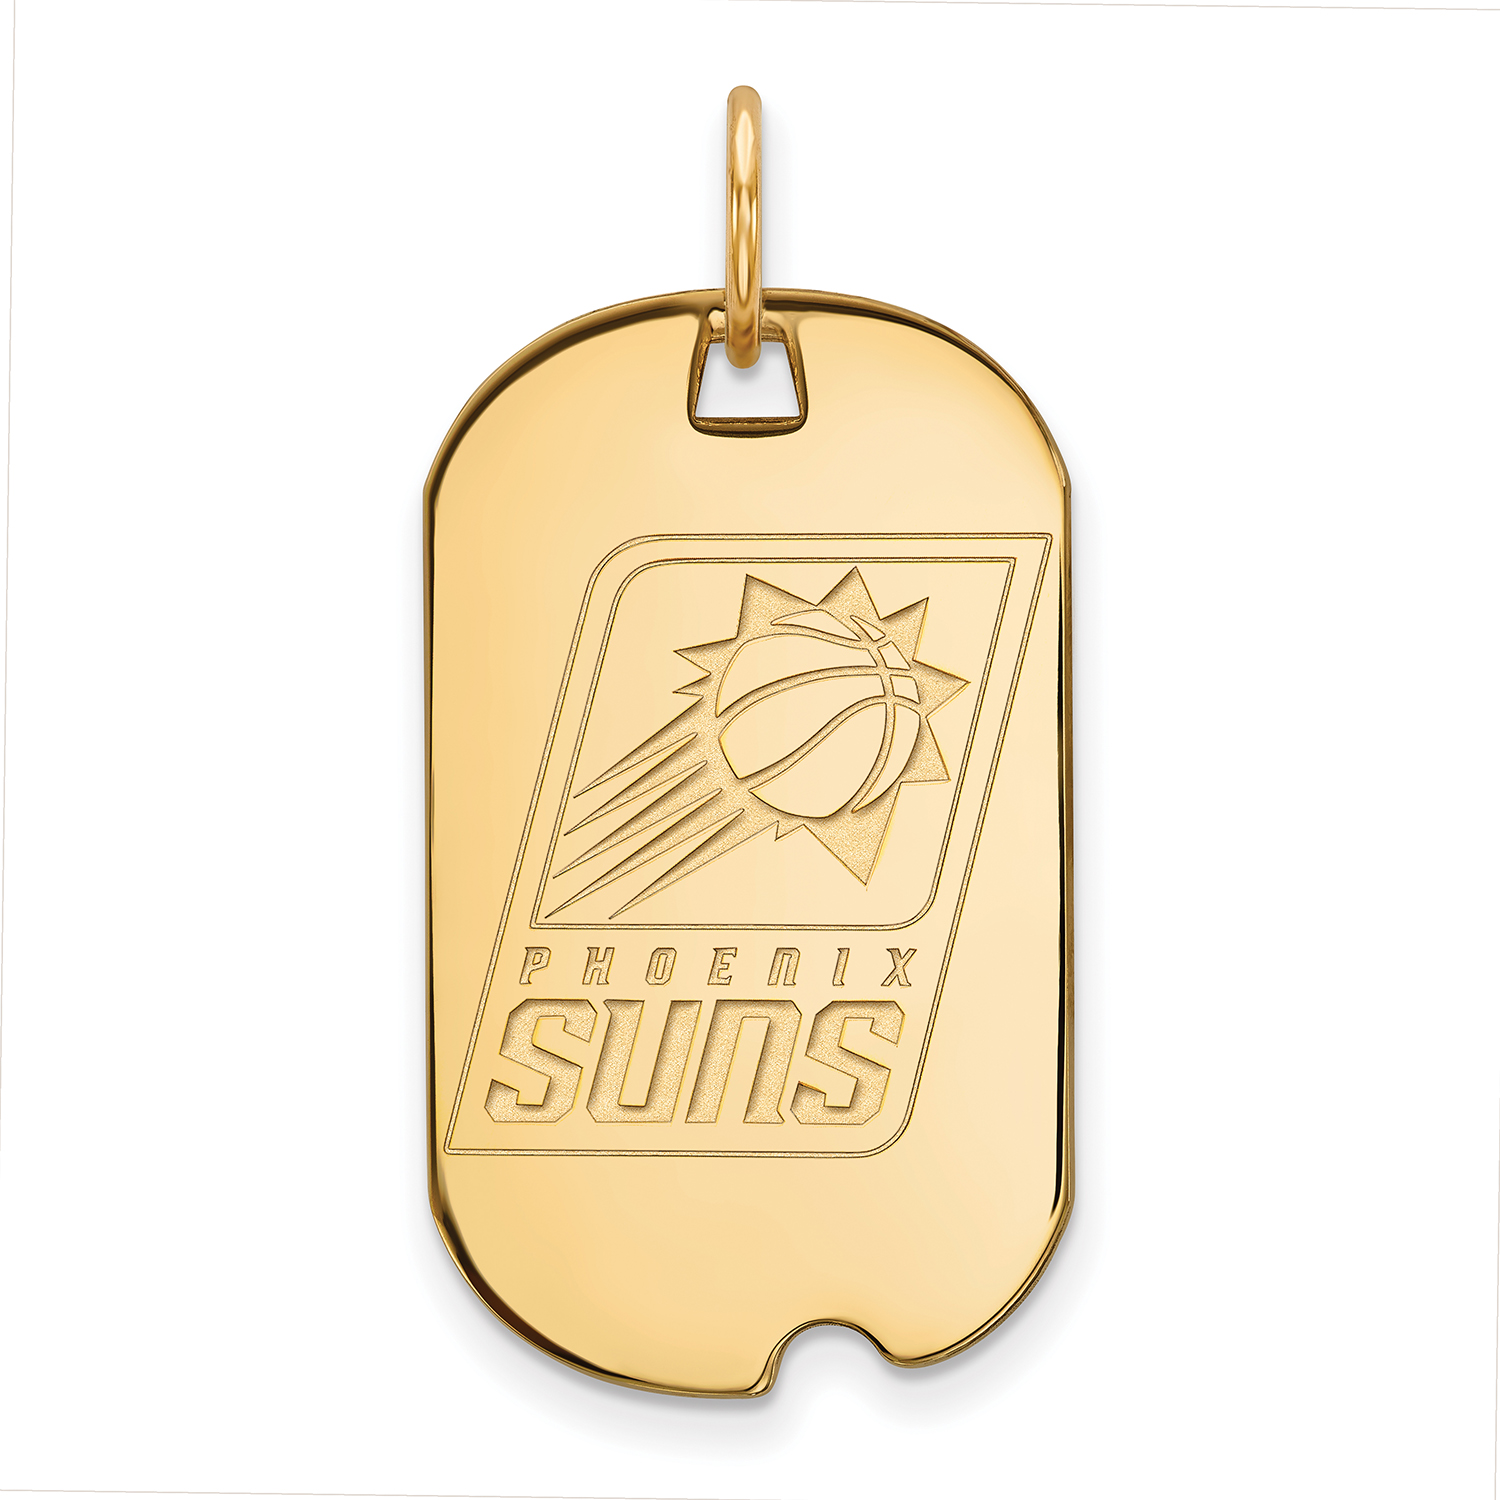 Phoenix Suns Women's Gold Plated Small Dog Tag - No Size